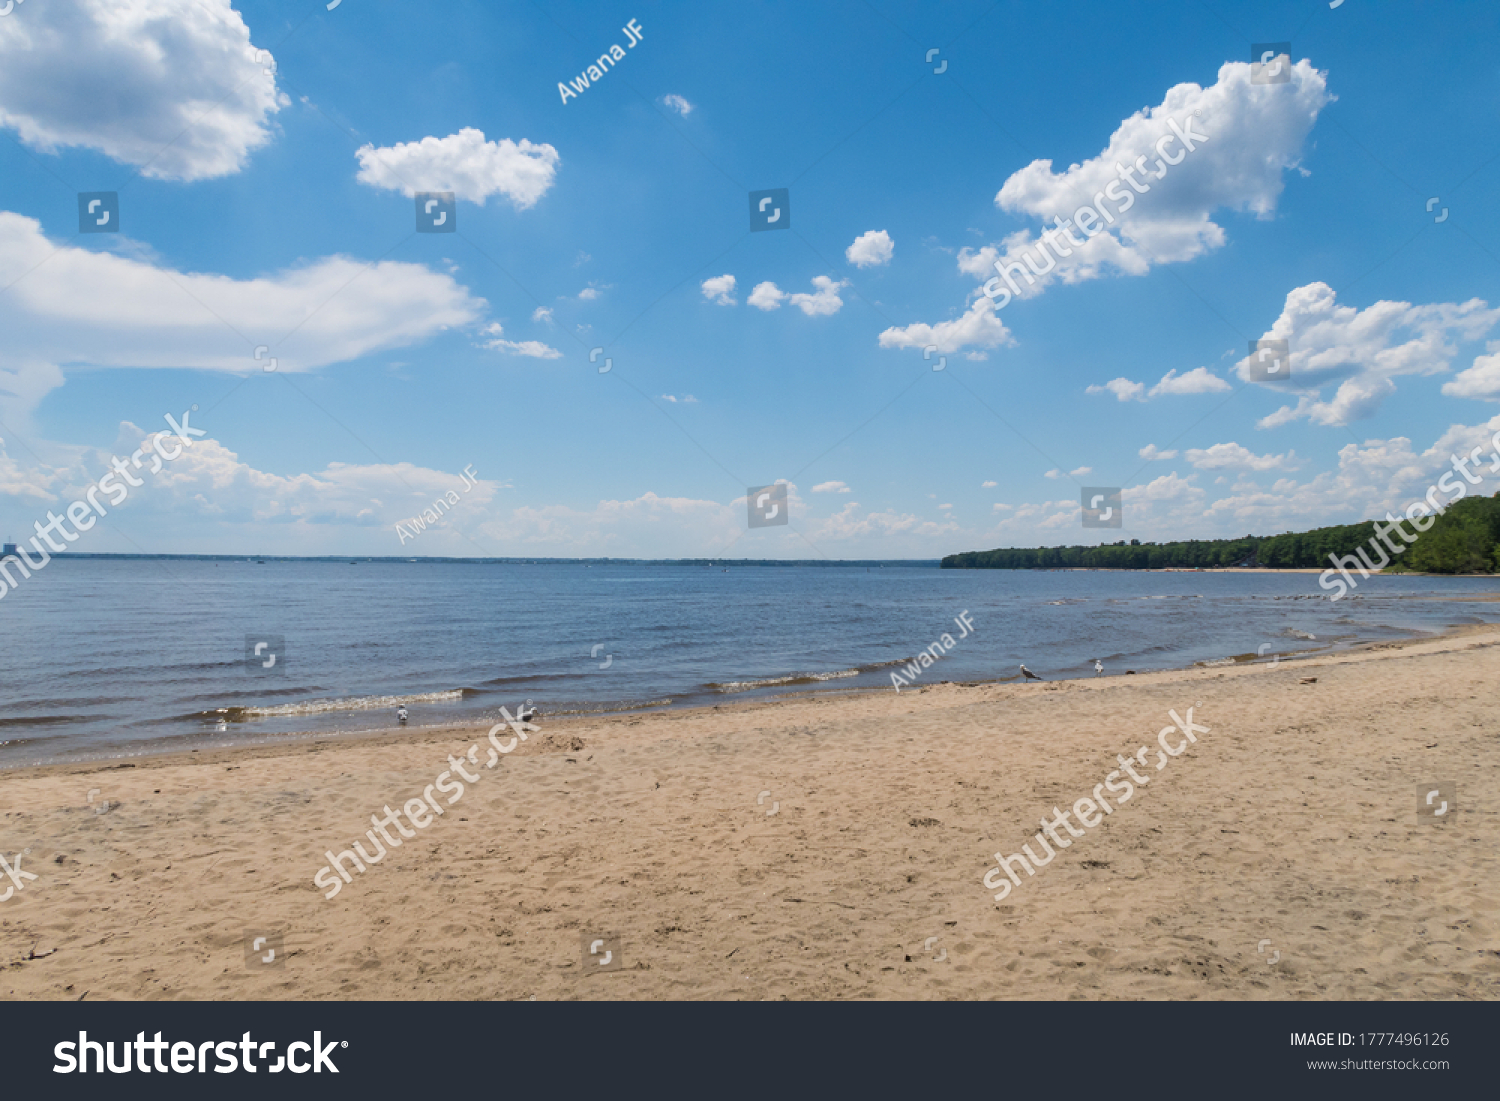 stock-photo-view-of-the-sand-beach-and-l